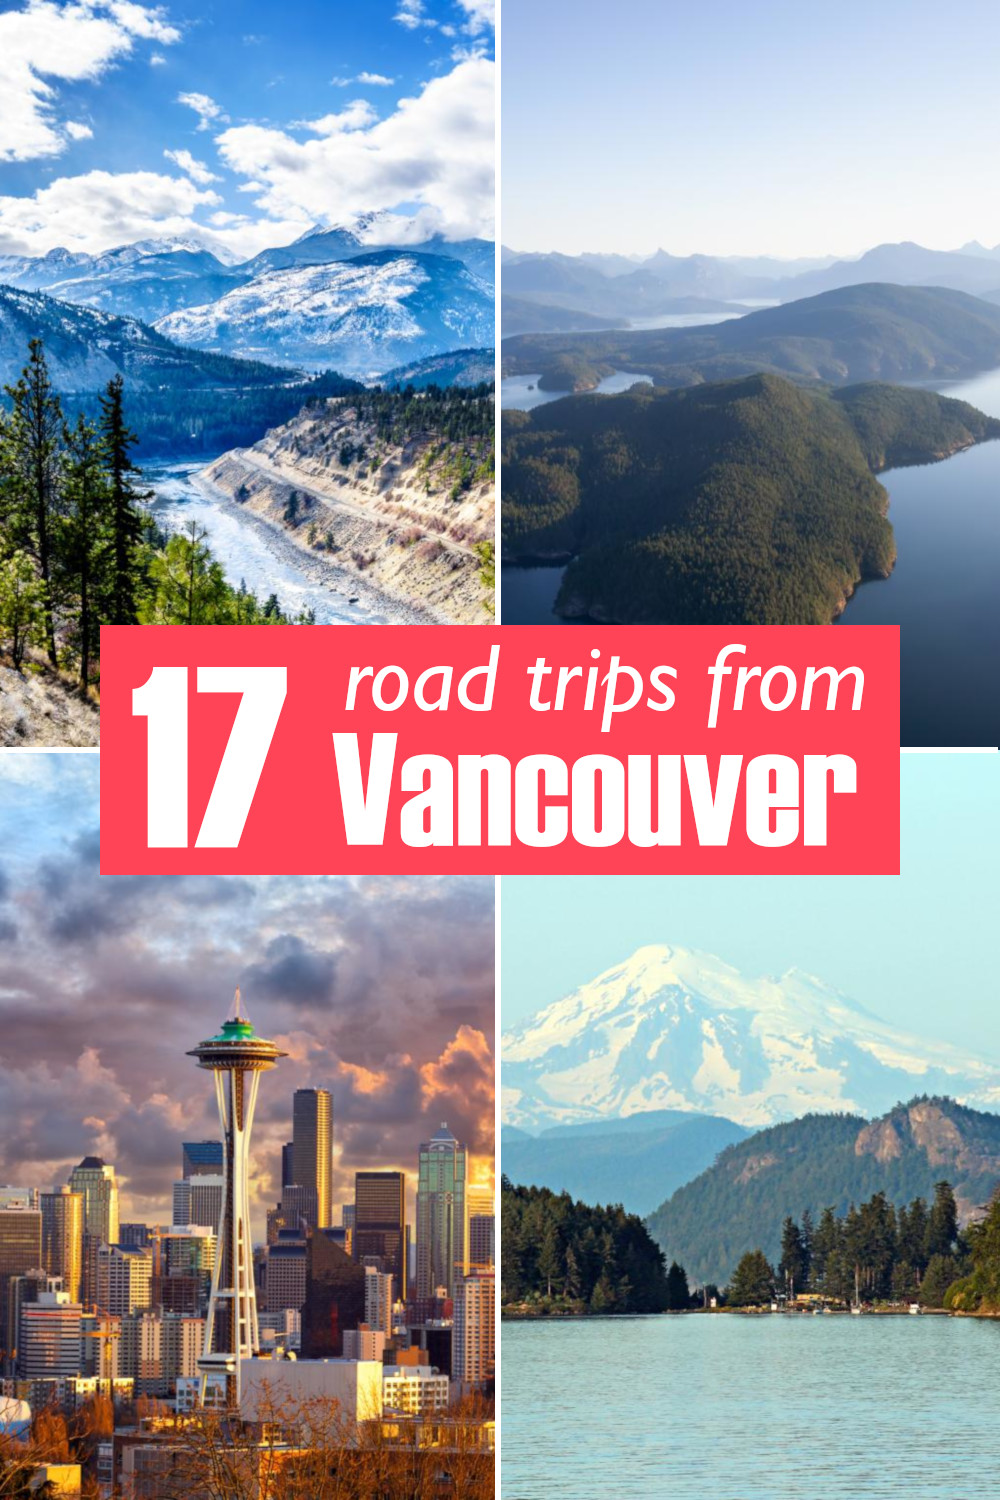 Best road trips from Vancouver from city breaks and scenic drives to National Parks, mountain trips and amazing scenery